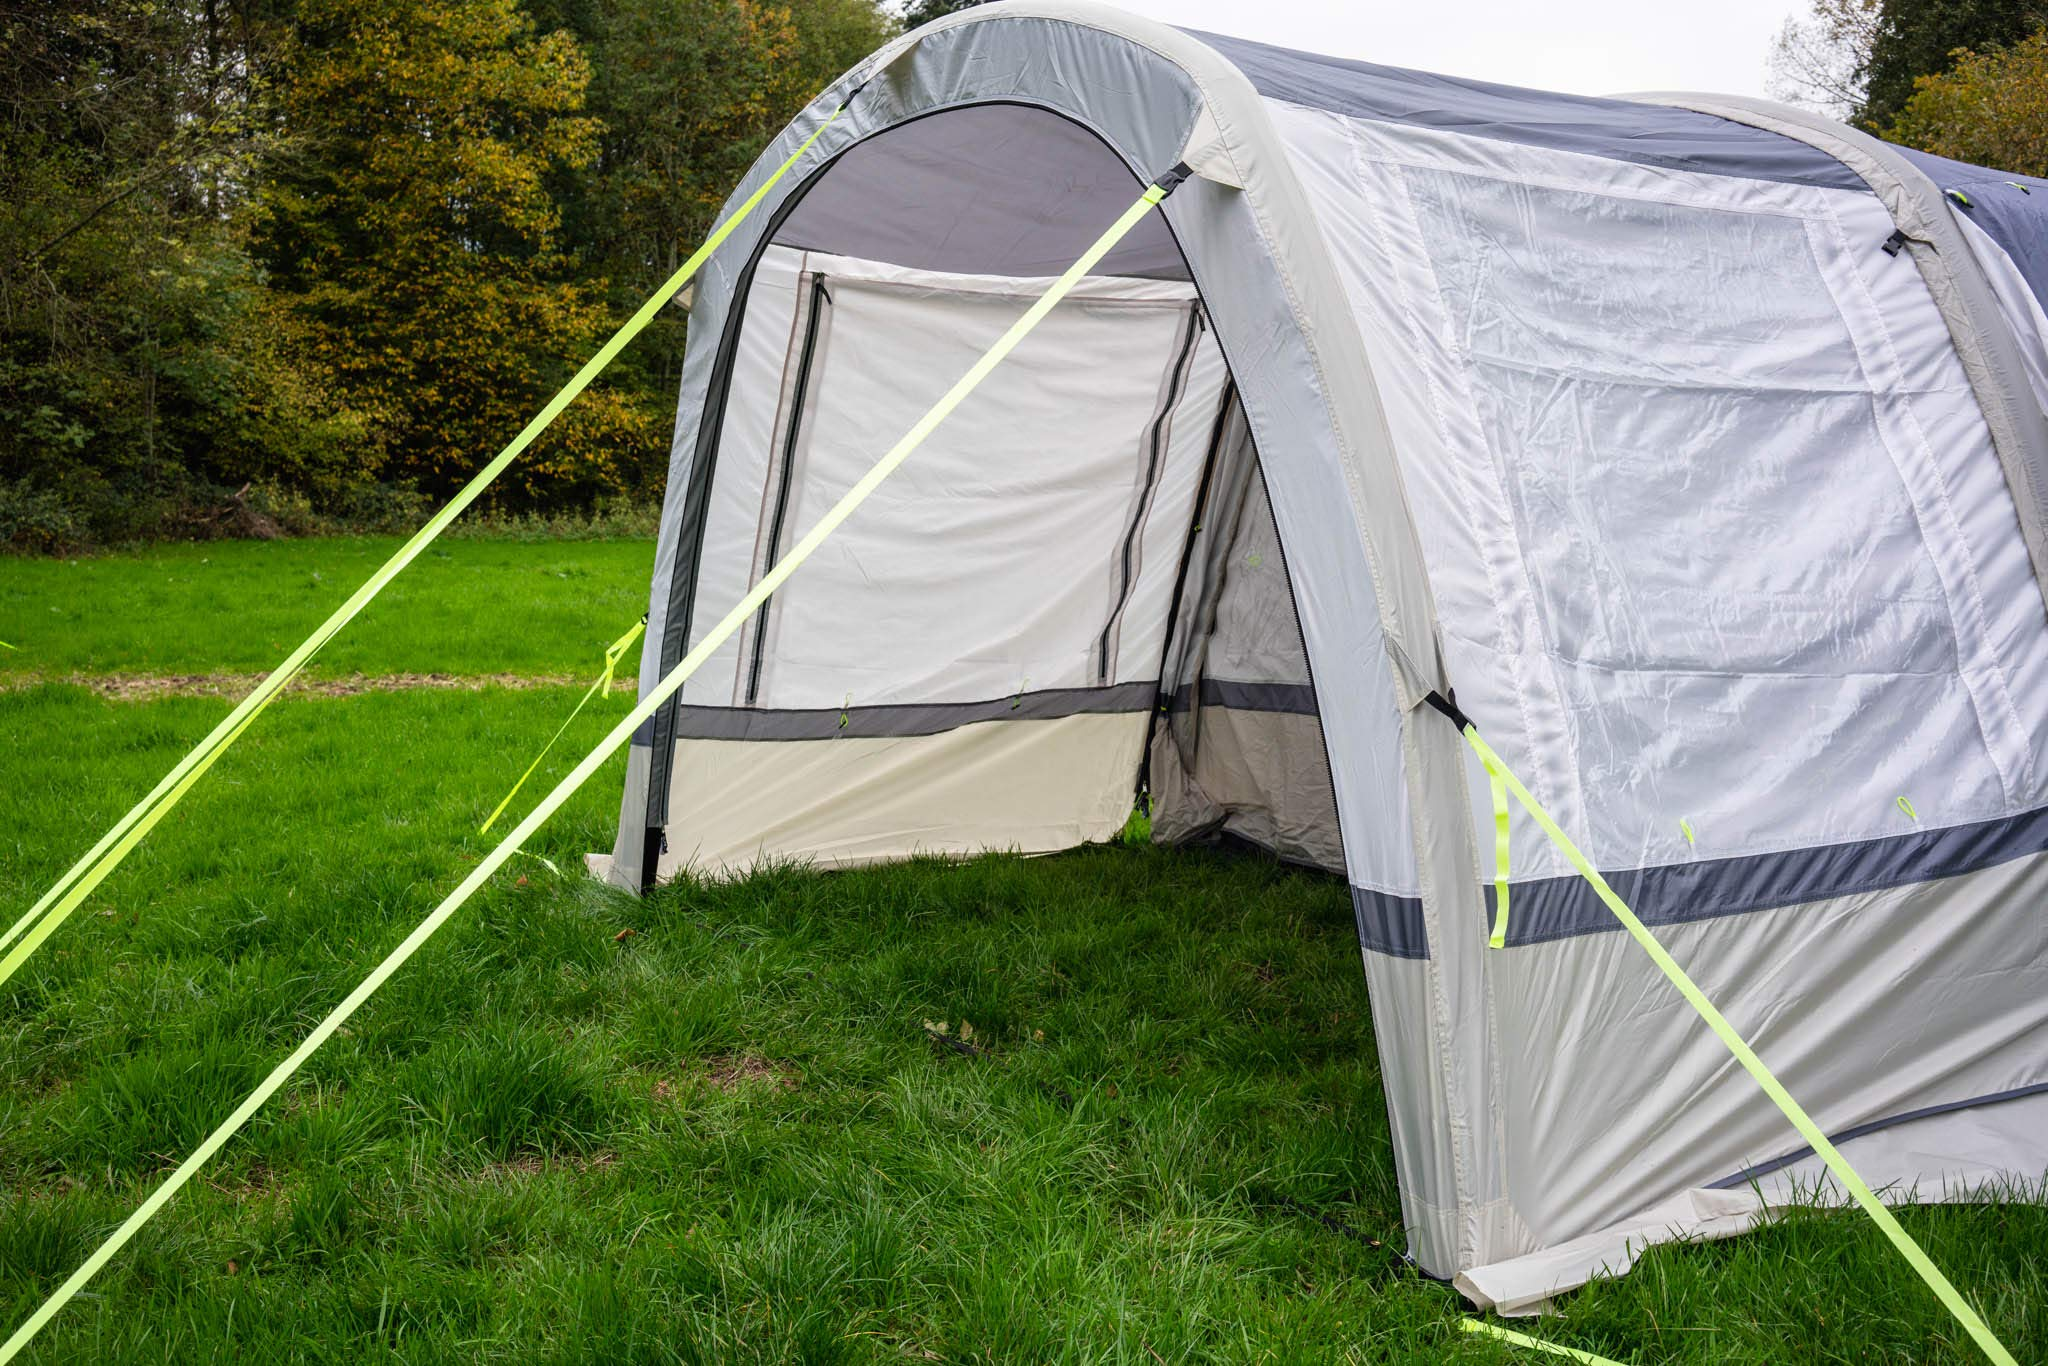 OLPRO Outdoor Leisure Products Cocoon Extension 3.5m x 1.8m Inflatable Drive Away Campervan Awning Porch Extension for Cocoon Breeze Sage Green & Chalk 5